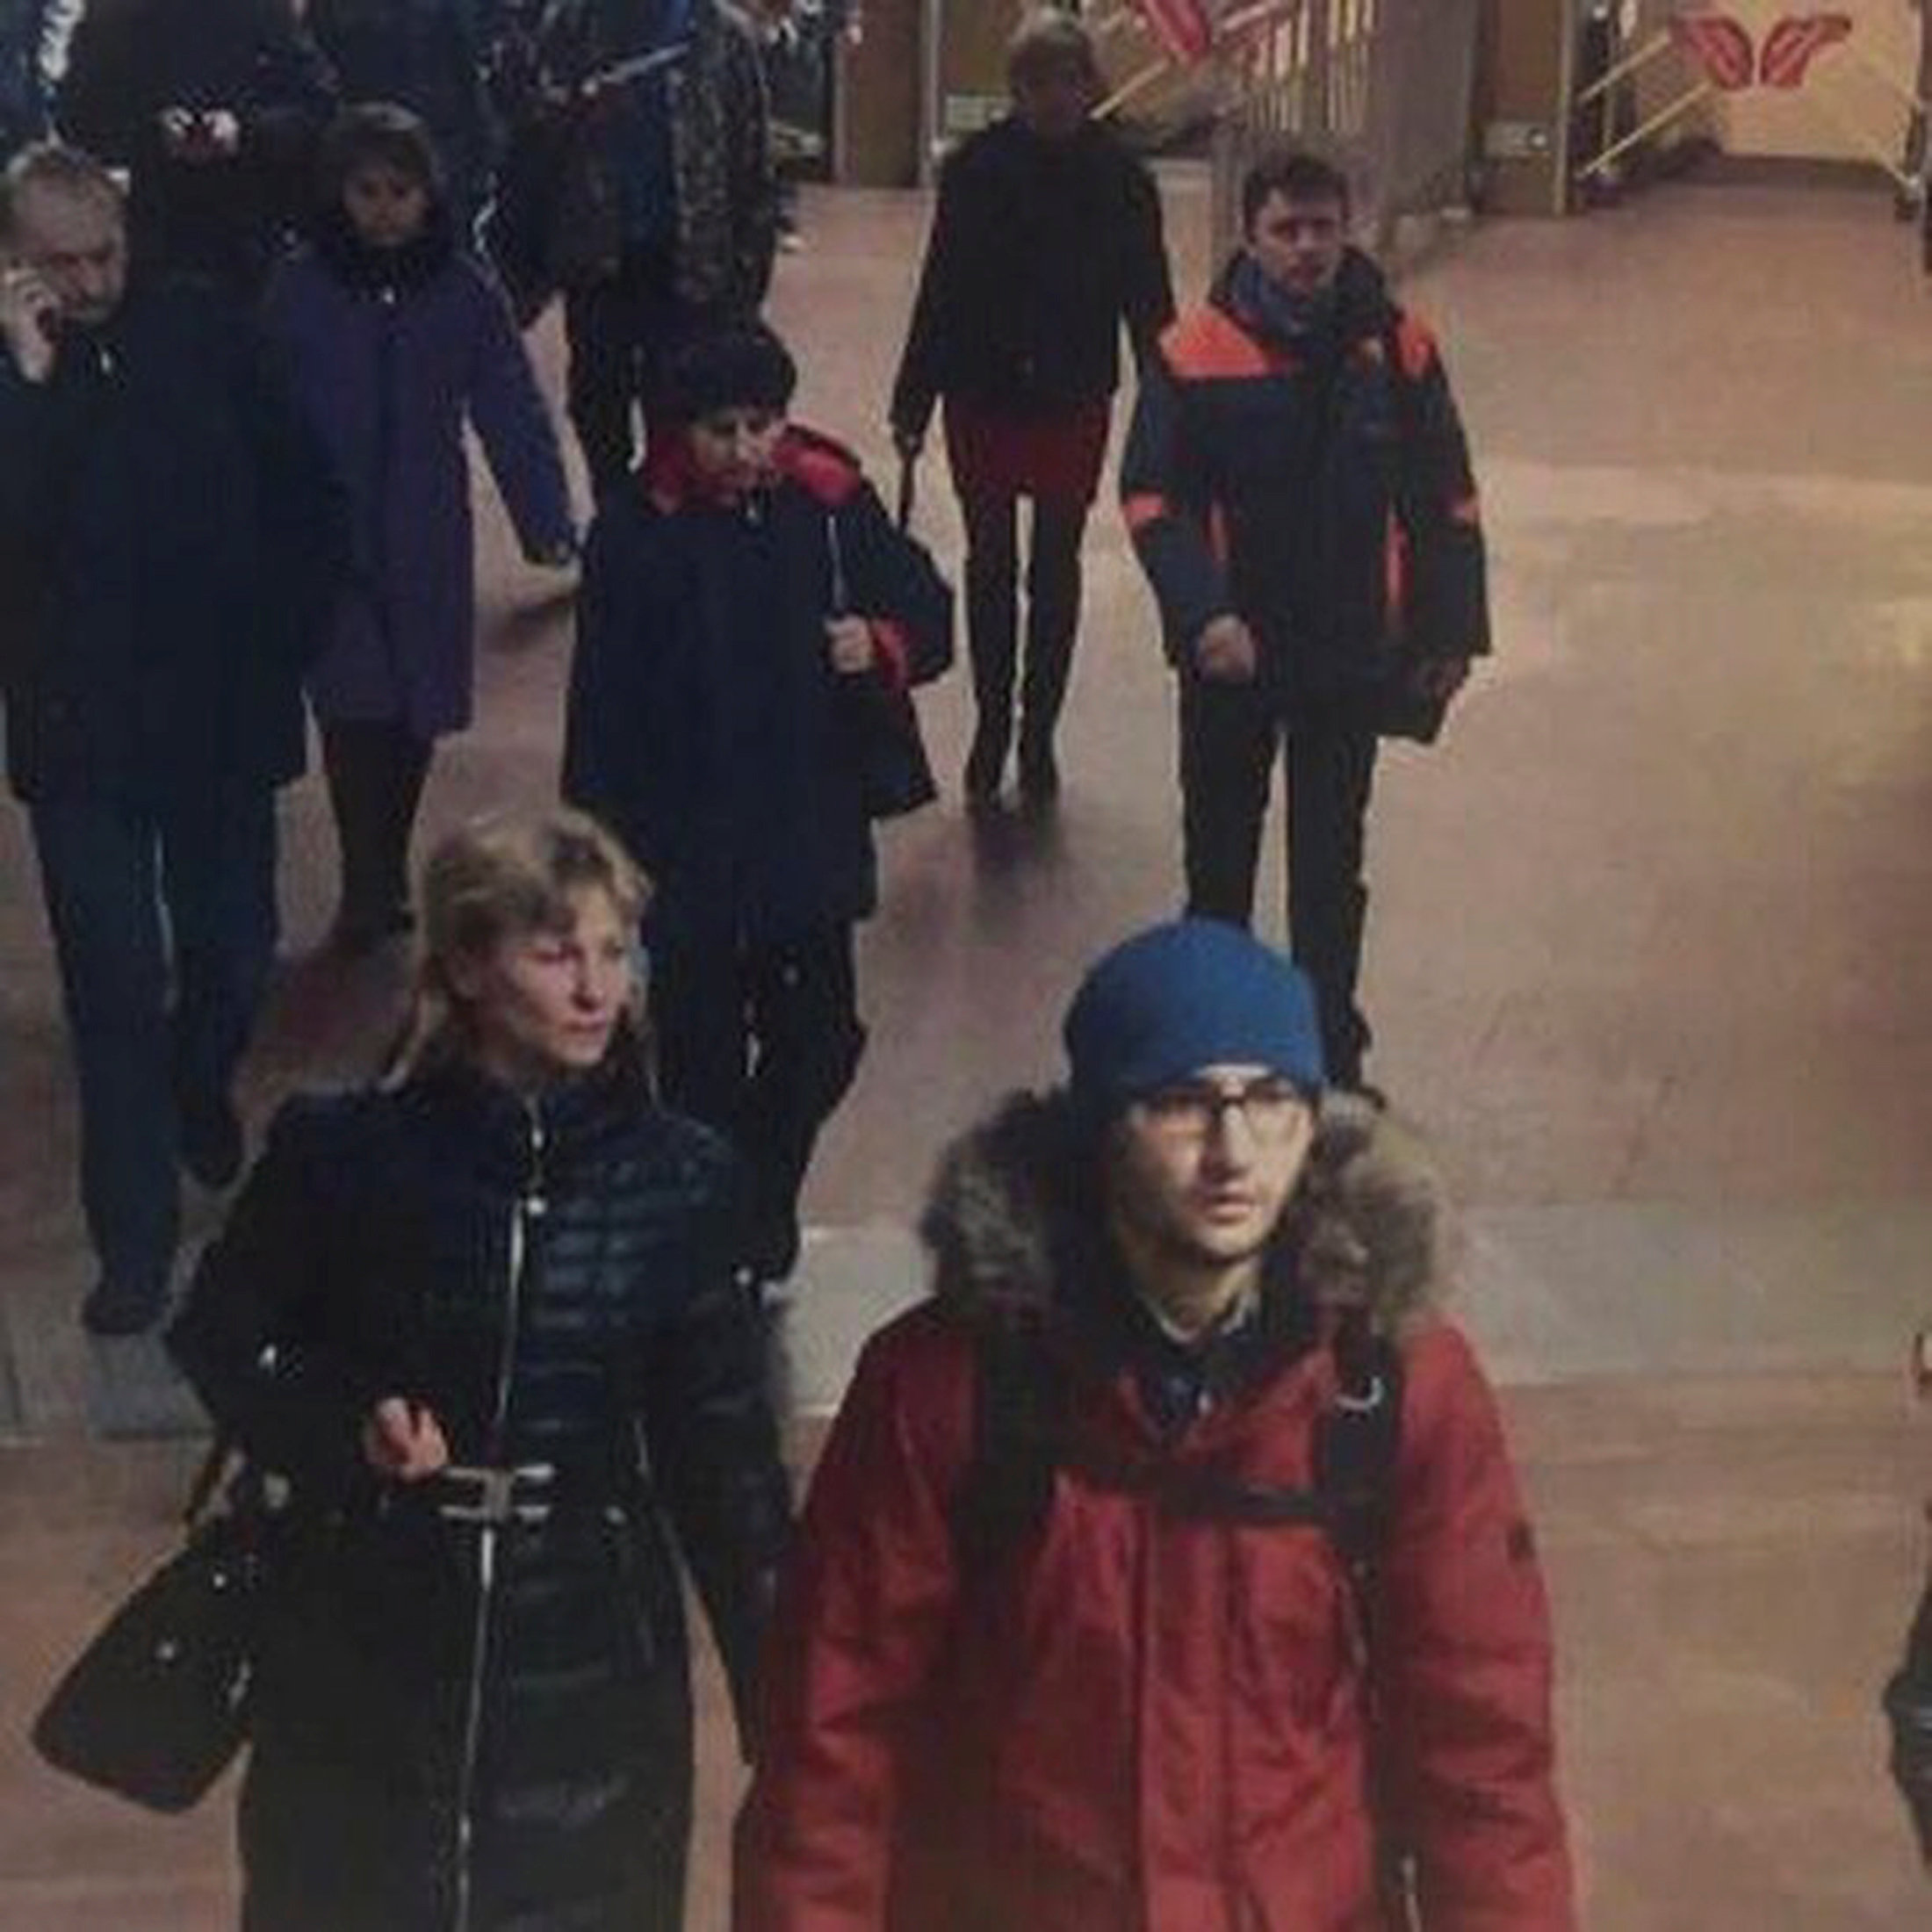 A still image of suspect Akbarzhon Jalilov walking at St Petersburg's metro station. (5th Channel Russia/via Reuters)